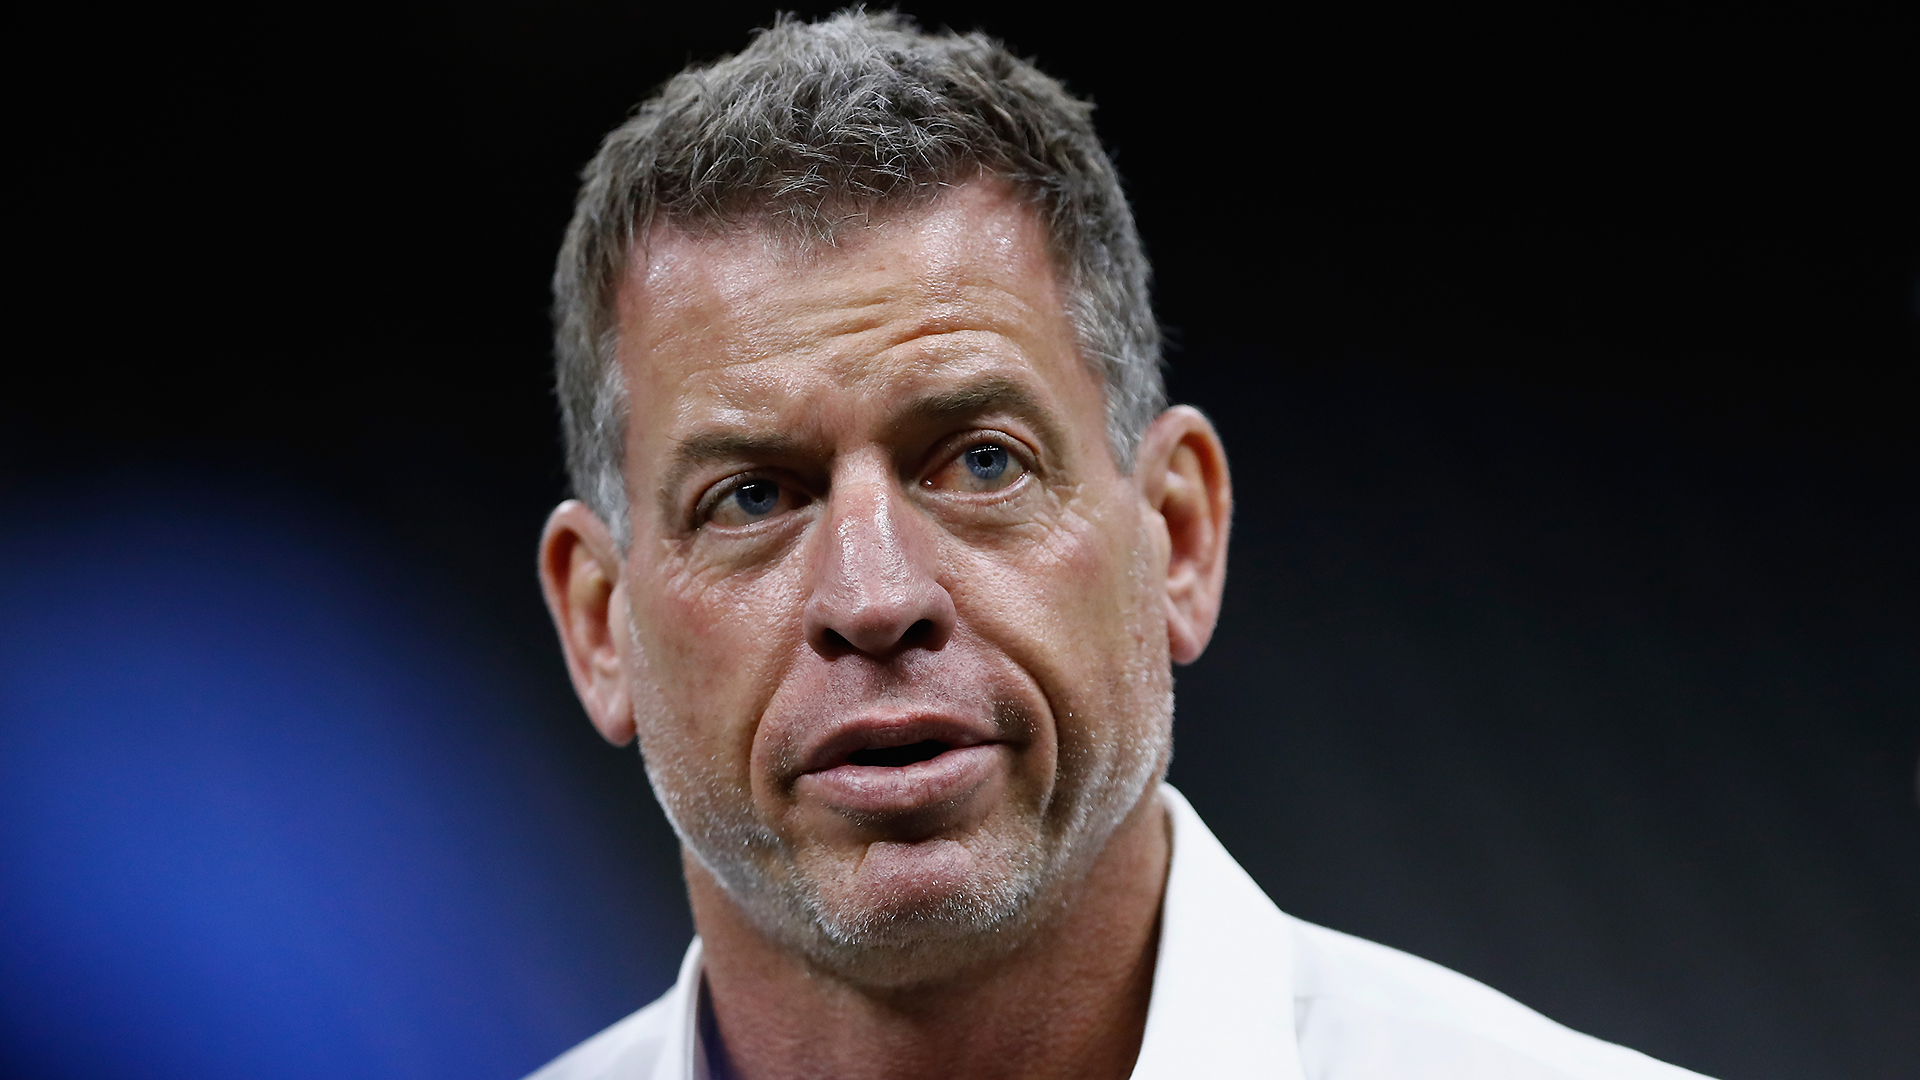 Troy Aikman defends himself after flyover comment: 'I am an unwavering patriot'